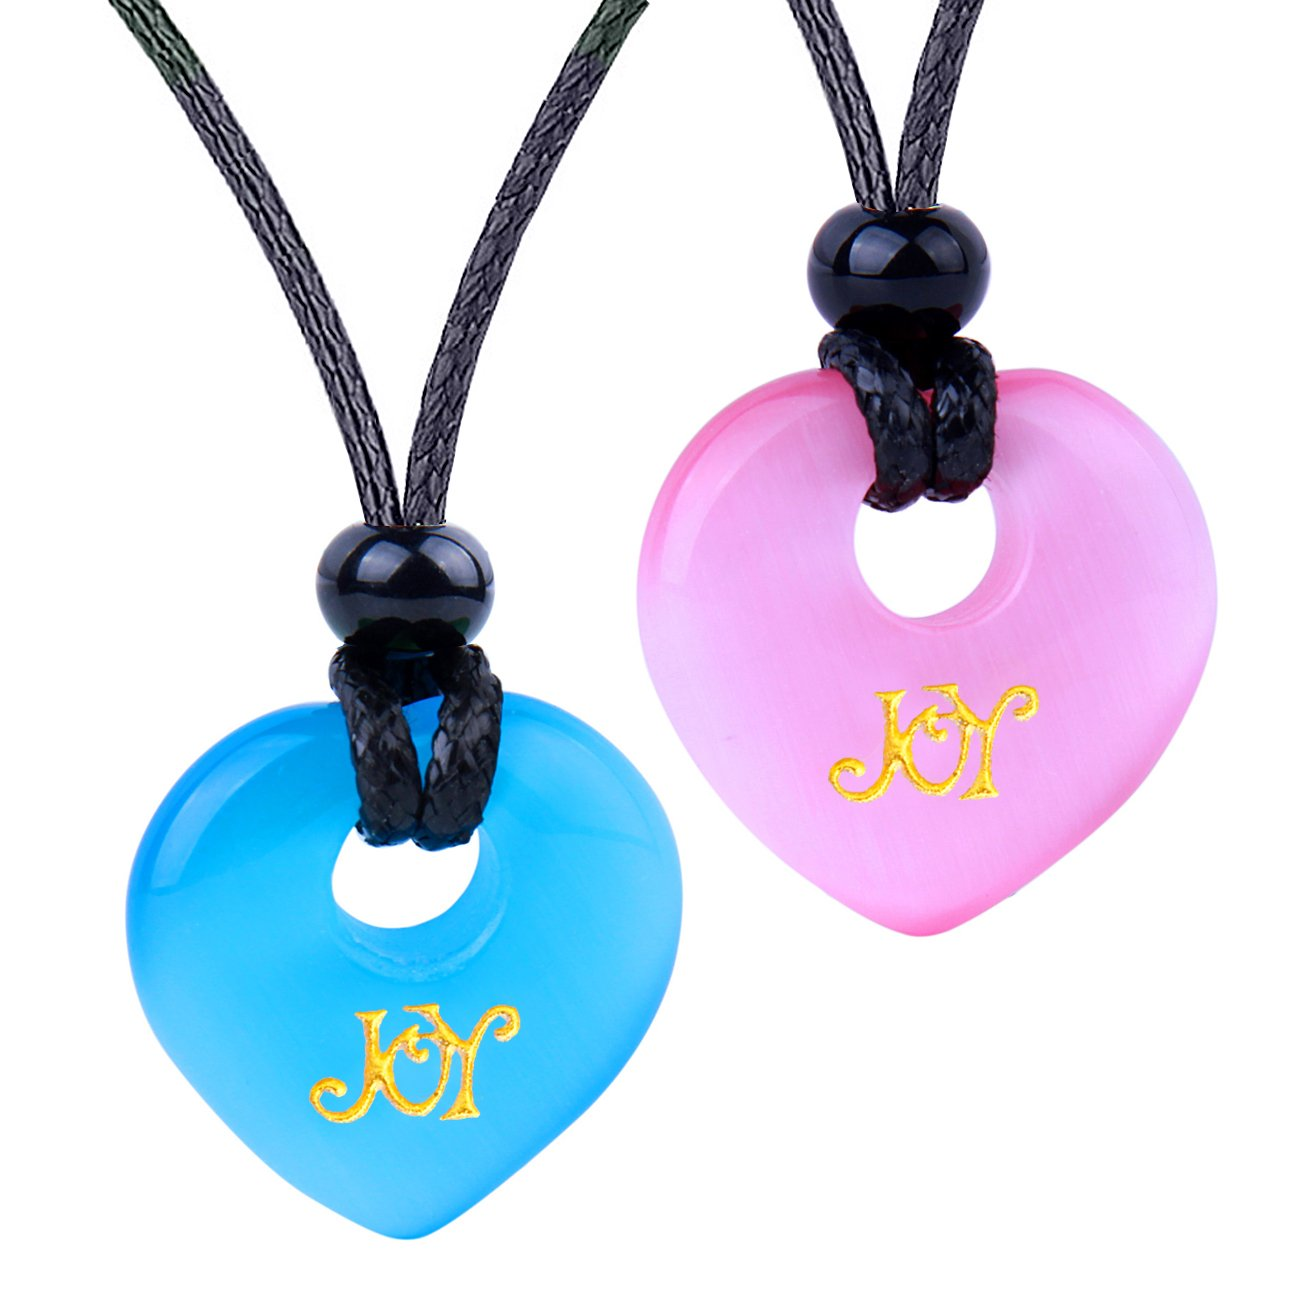 Inspirational Heart Donut Amulets Joy and Love Powers Couples BFF Blue Pink Simulated Cats Eye Necklaces